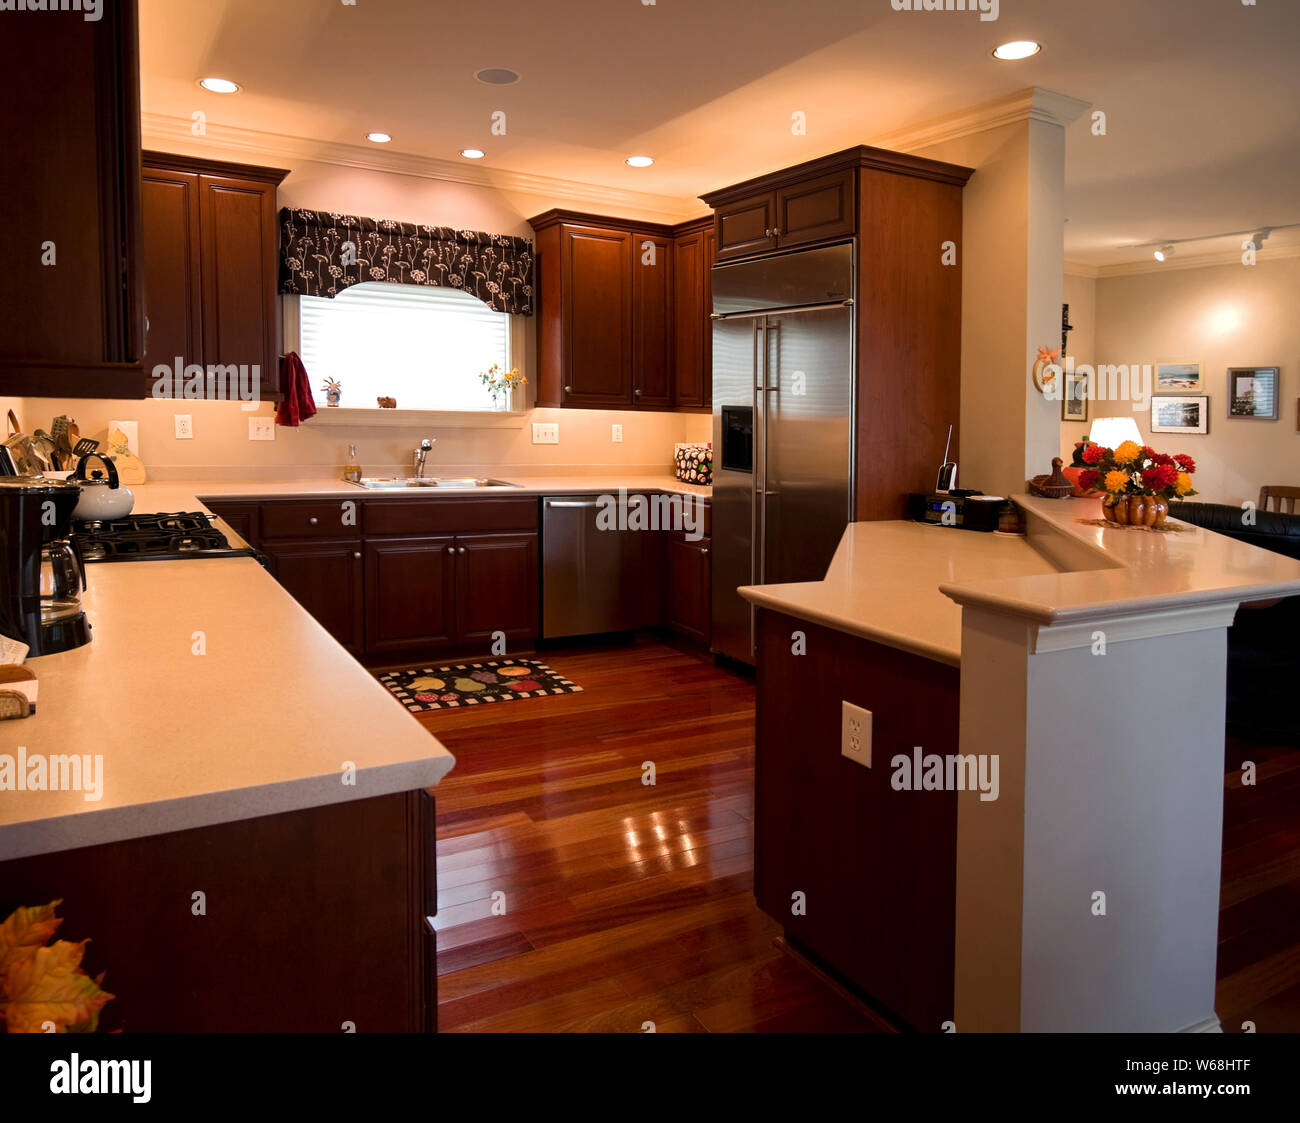 Kitchen Dark Wood Cabinets Stainless Steel Appliances Brazilian Cherry Floors Room Window Gas Range Ample Counter Space Recessed Lighting Hou Stock Photo Alamy